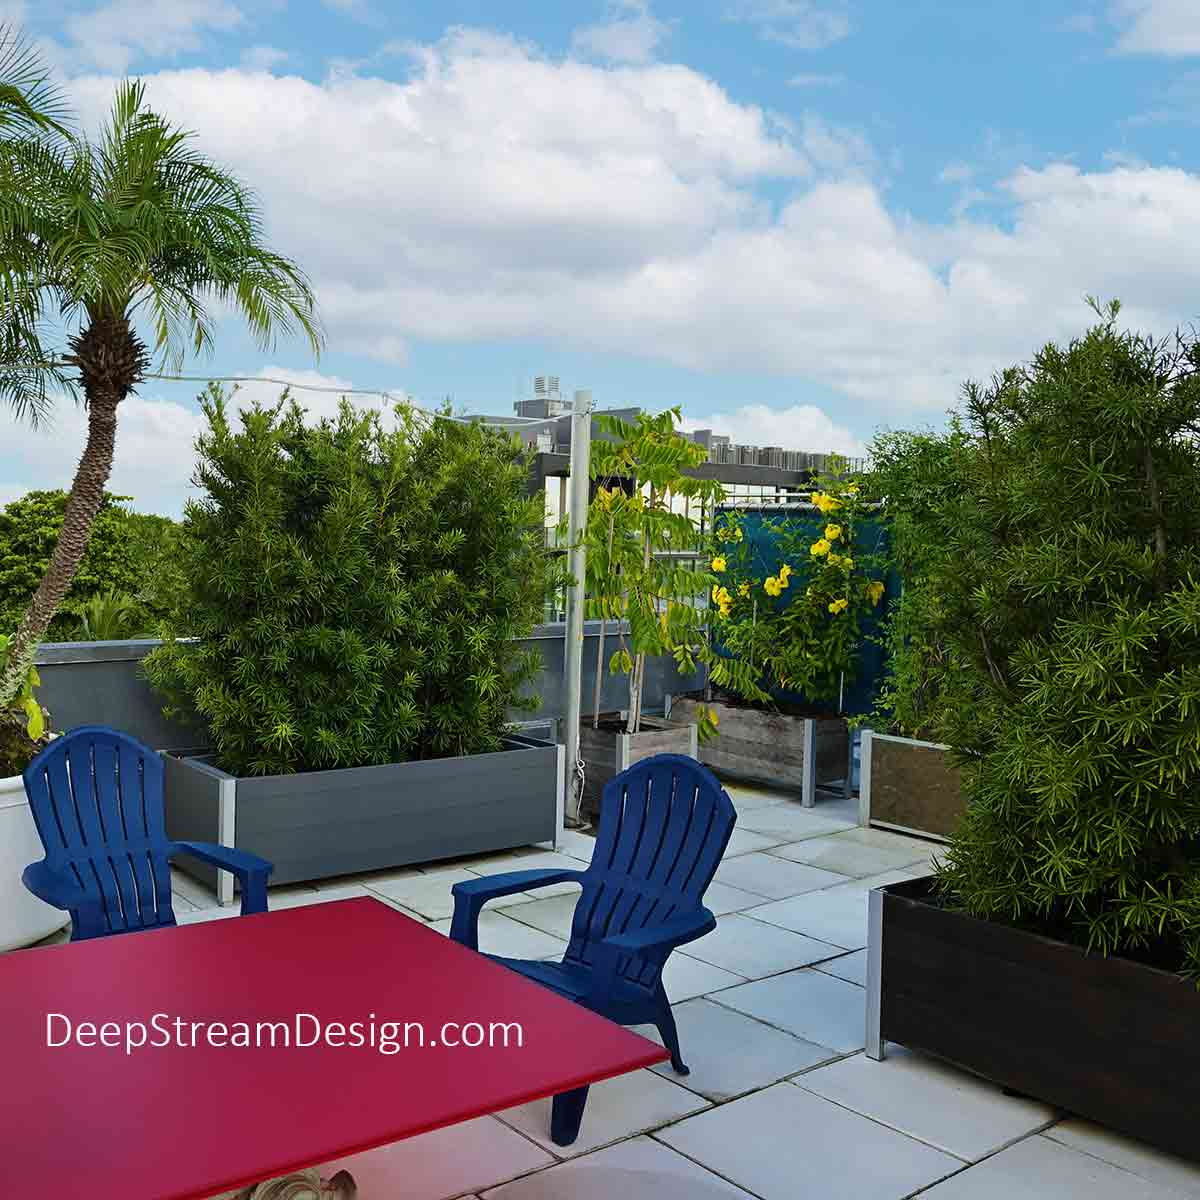 A restaurant with a rooftop deck dining area, with a colorful red table and contrasting blue chairs, uses a variety of Planter Privacy Screens growing hedges and trees in modern DeepStream Mariner and Audubon commercial wood planters. The hedges and trees are augmented using Planters with Trellises growing vines with large yellow tropical flowers.